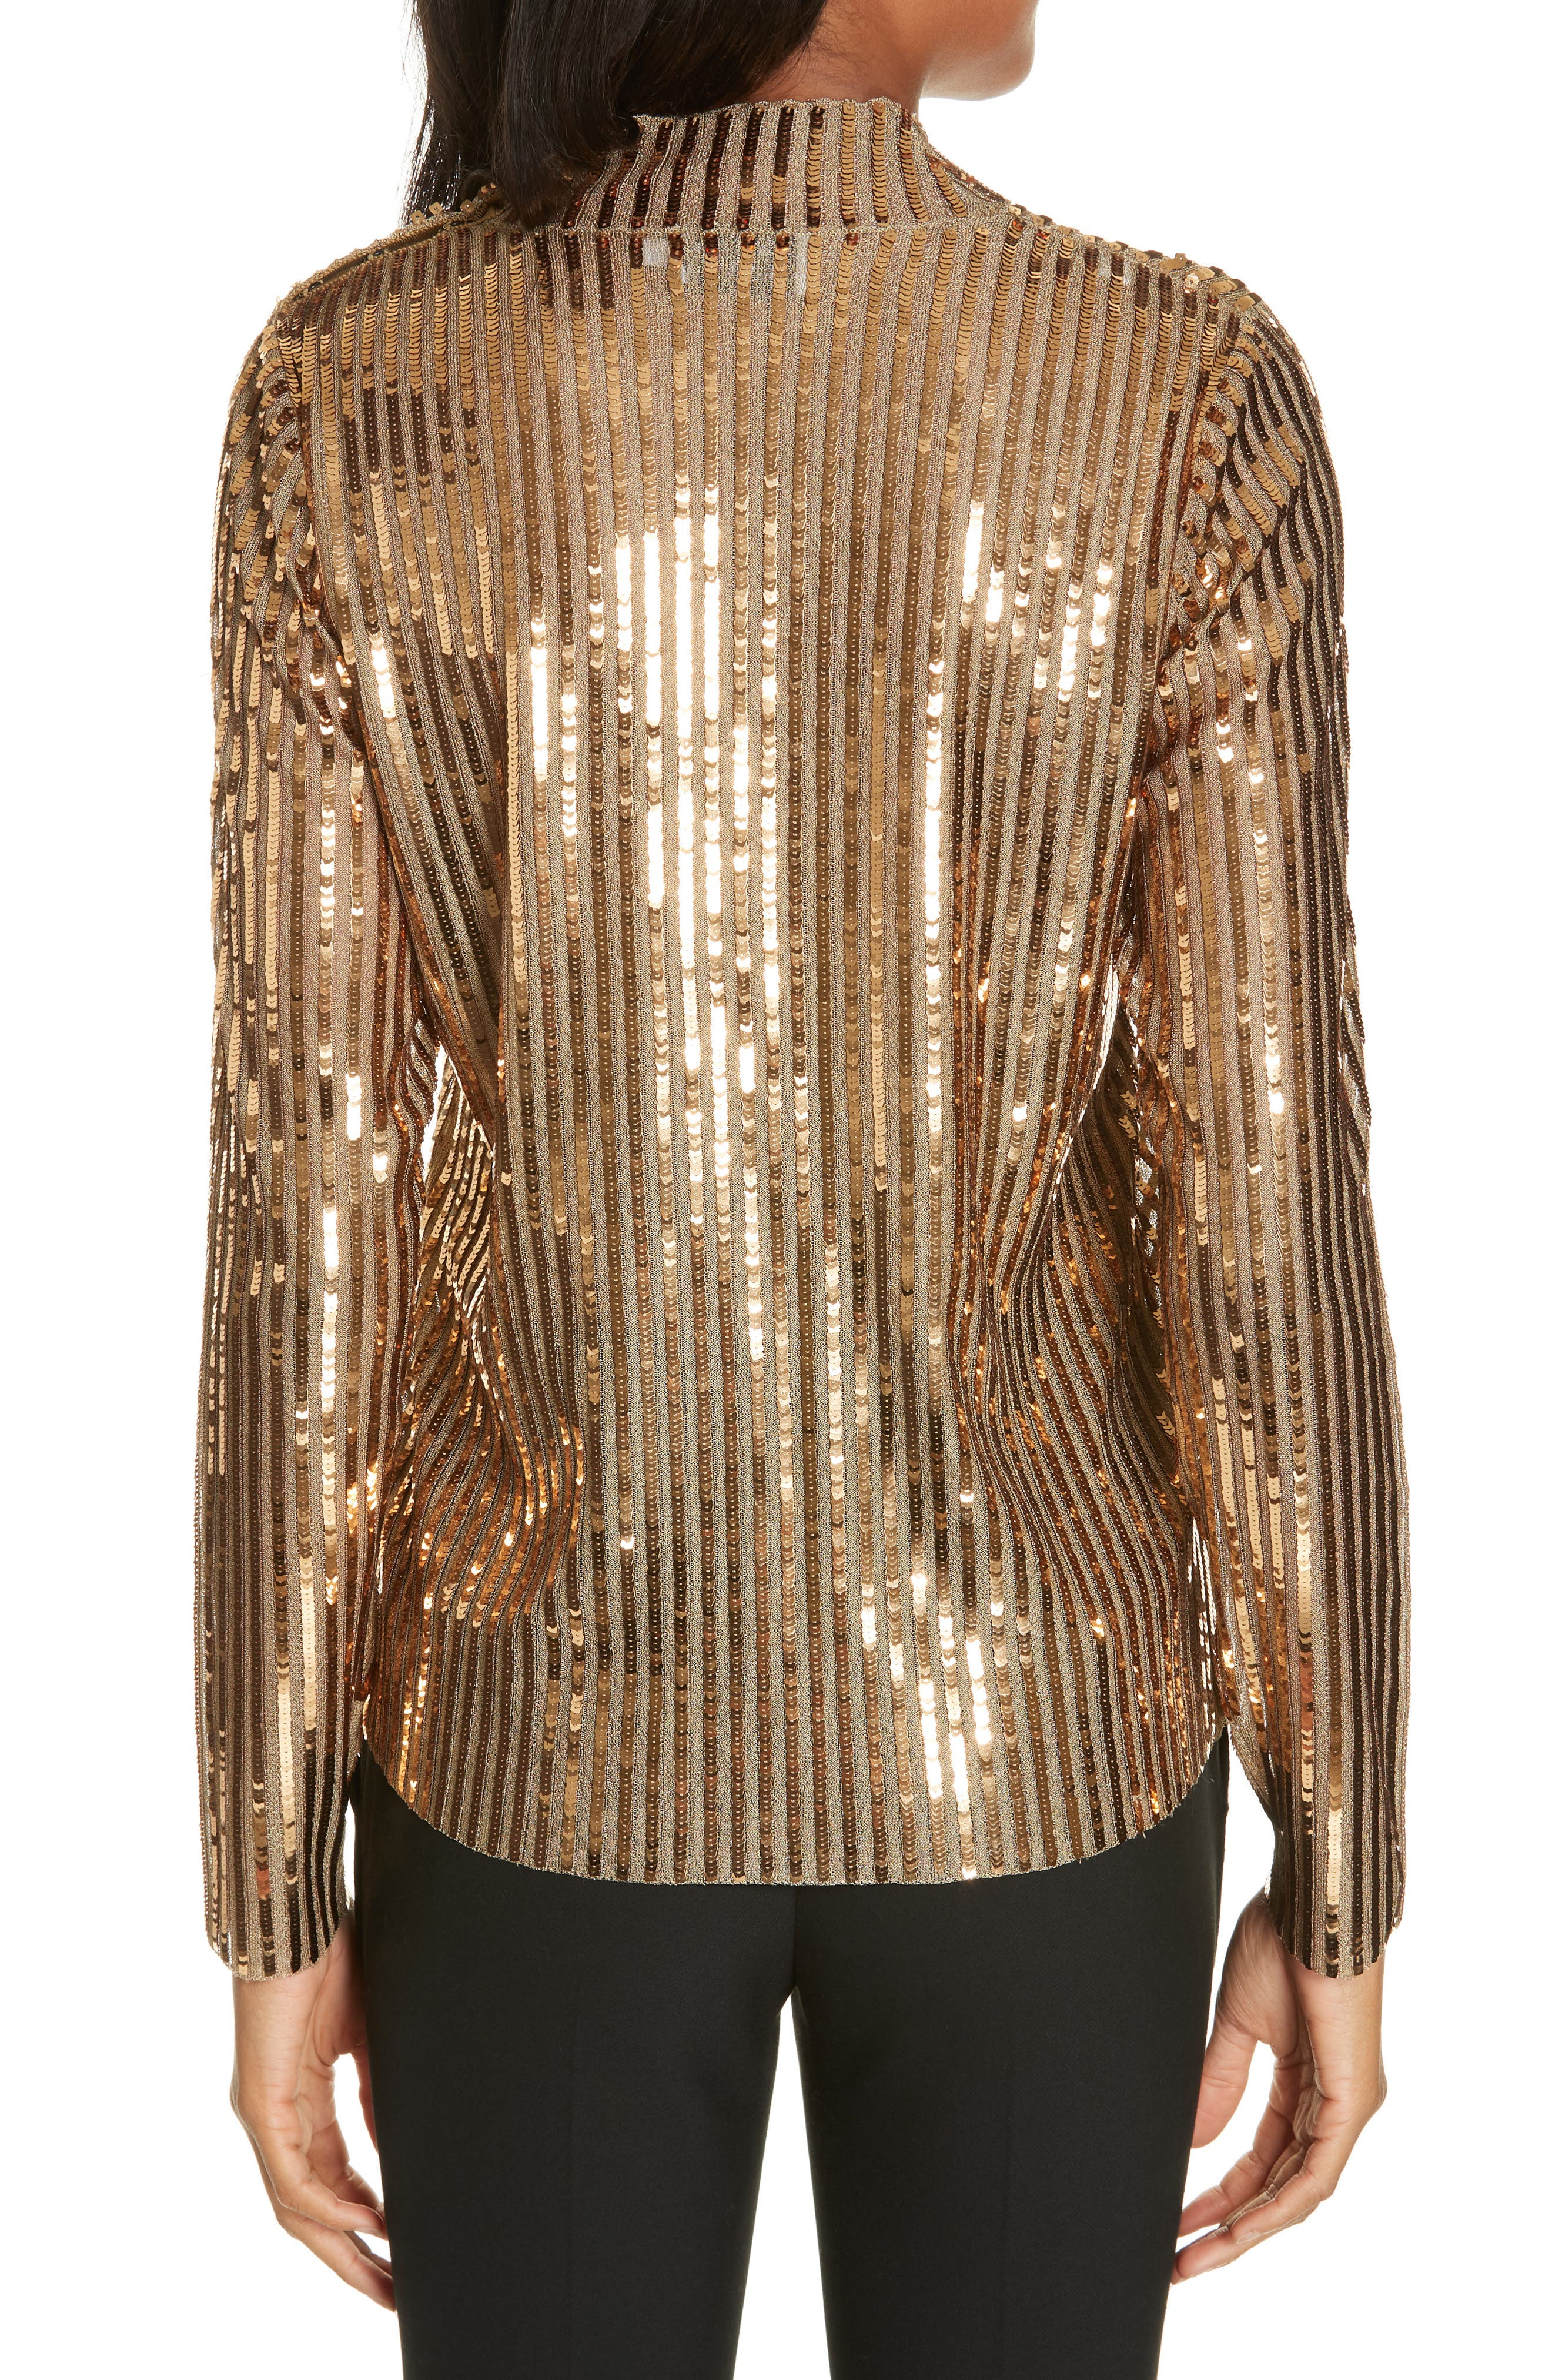 TANYA TAYLOR, Grace Gold Sequins Top, Alternate thumbnail 2, color, 712